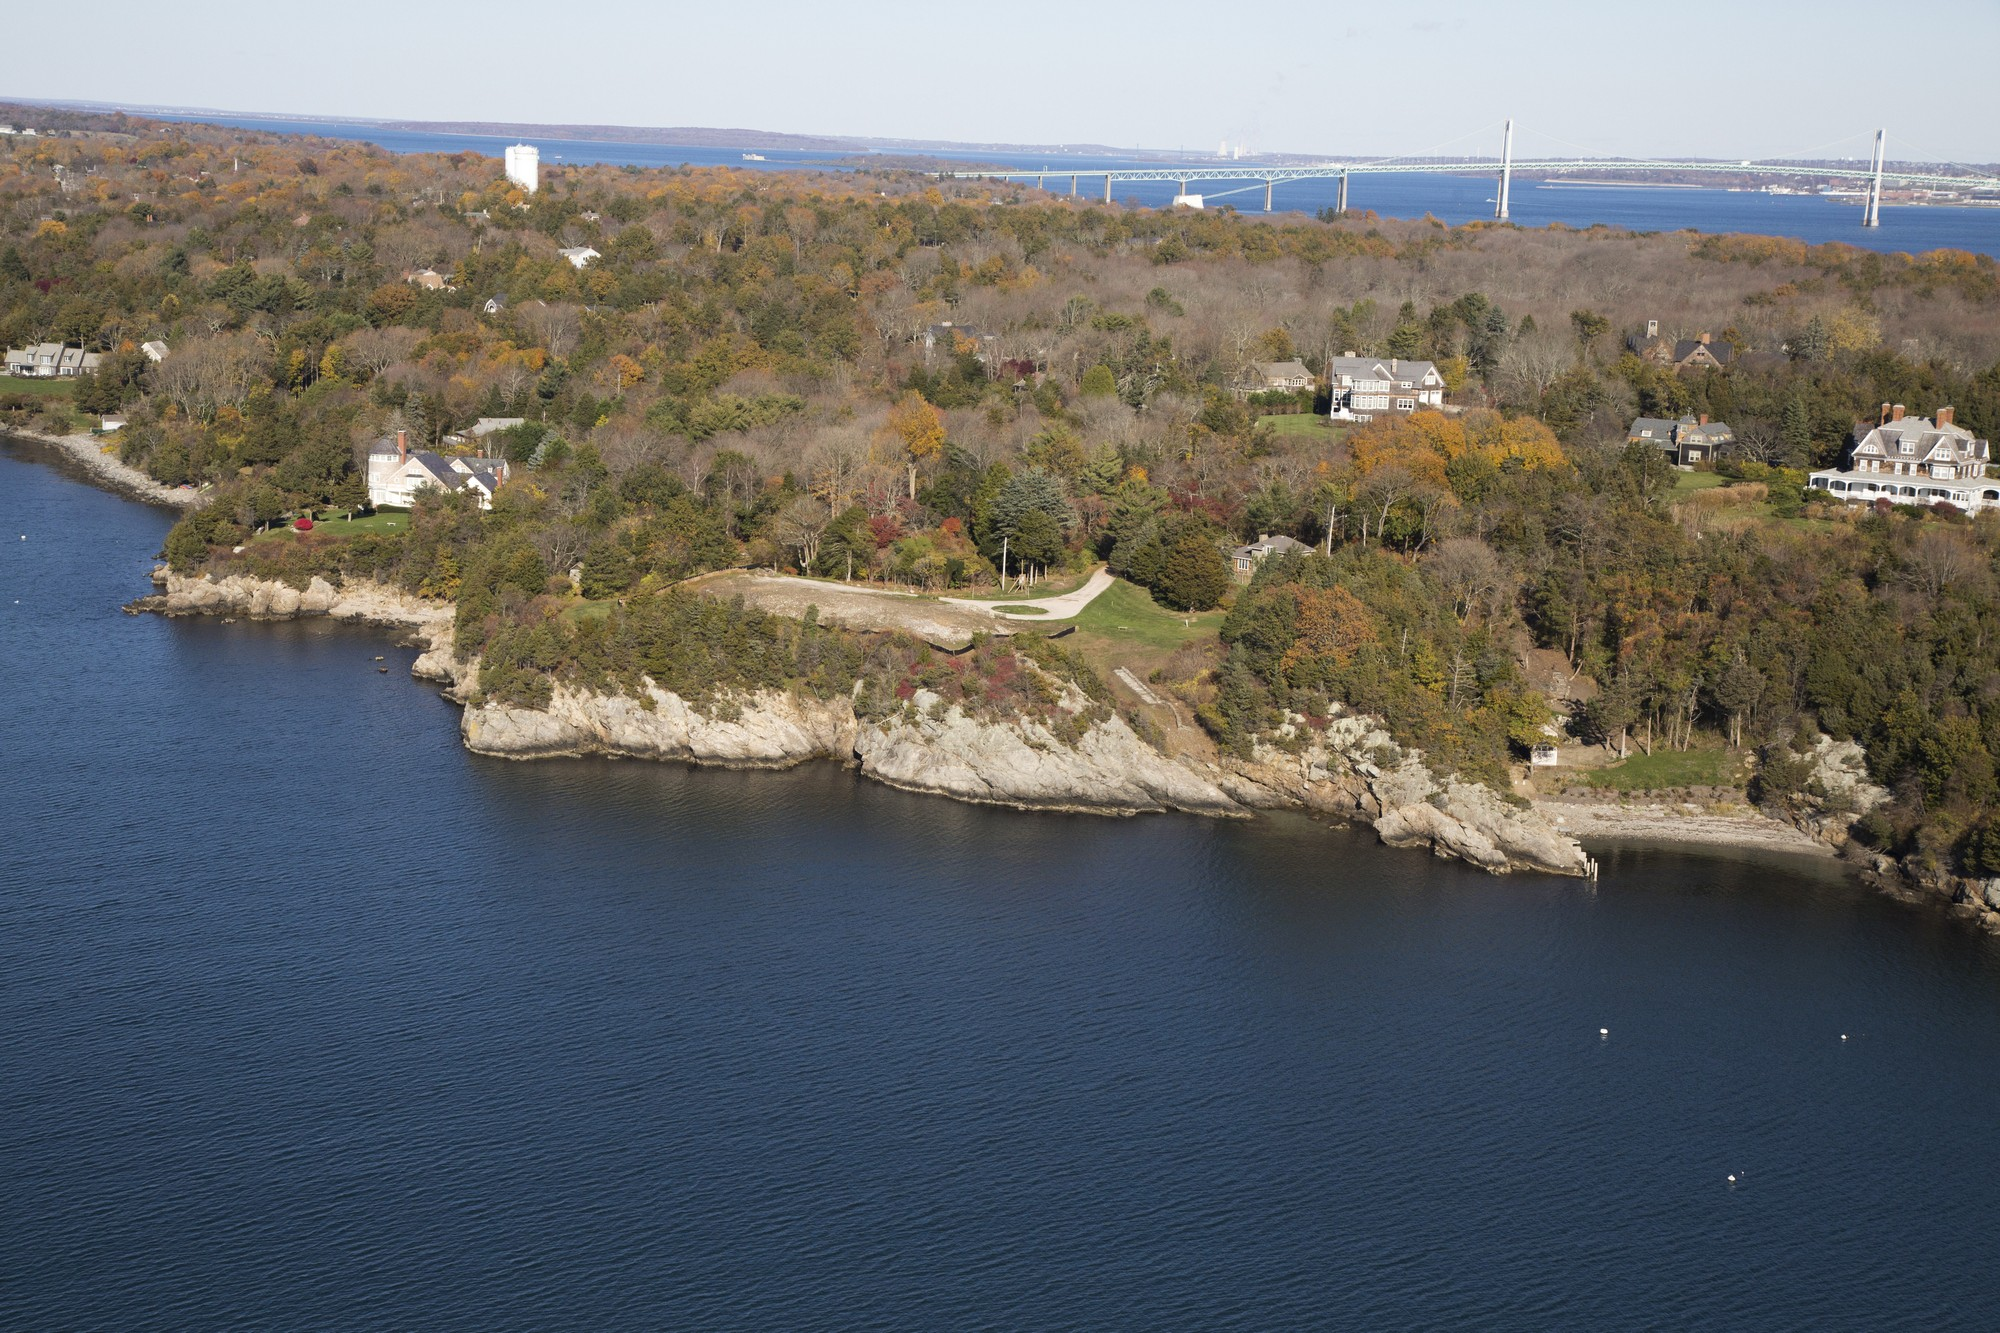 Terreno por un Venta en Oceanfront Site on Mackerel Cove 196 Highland Drive Jamestown, Rhode Island 02835 Estados Unidos